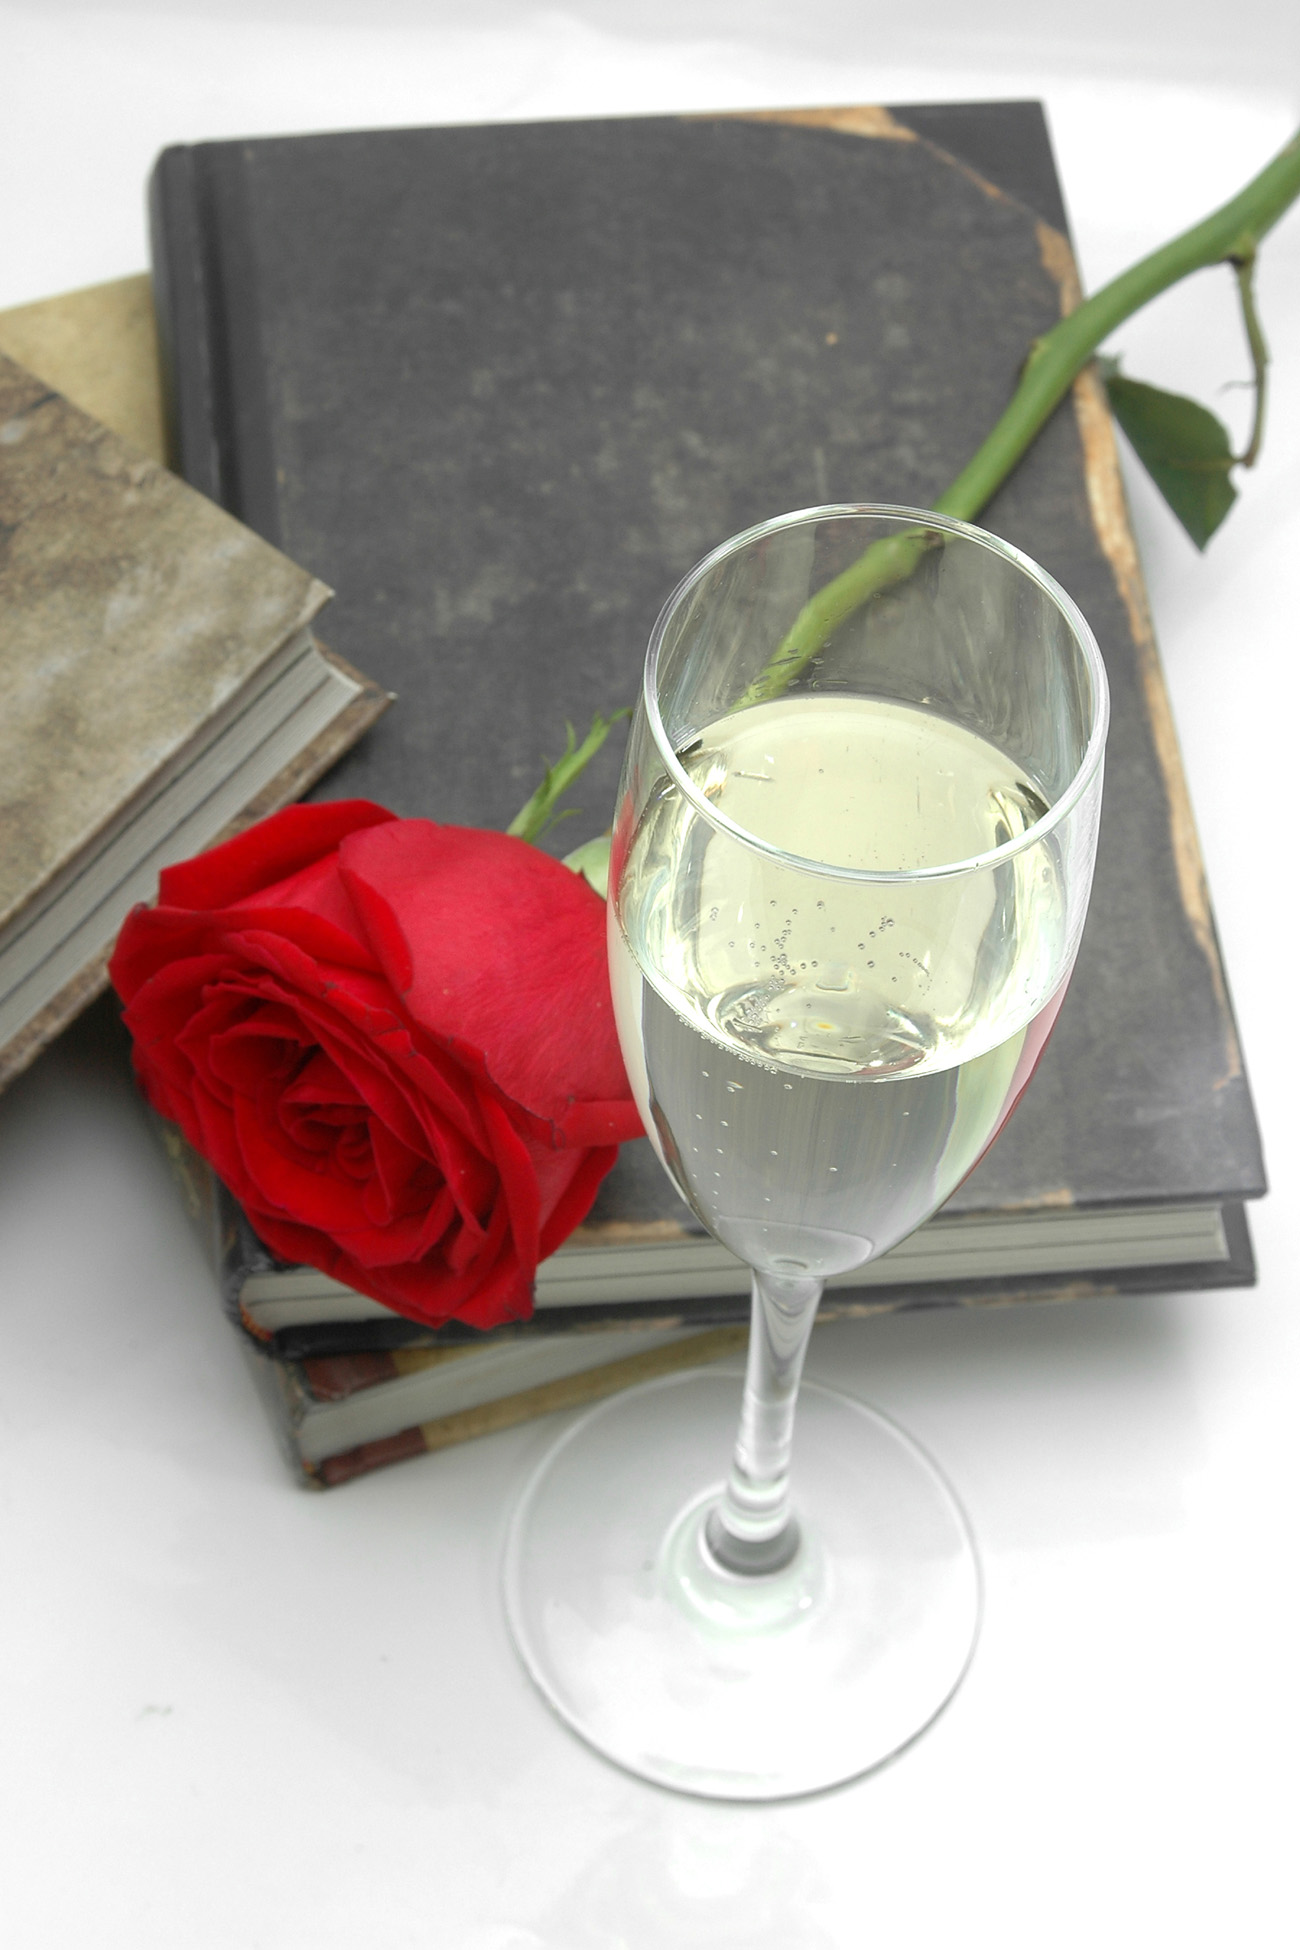 Old books and Roses 31603